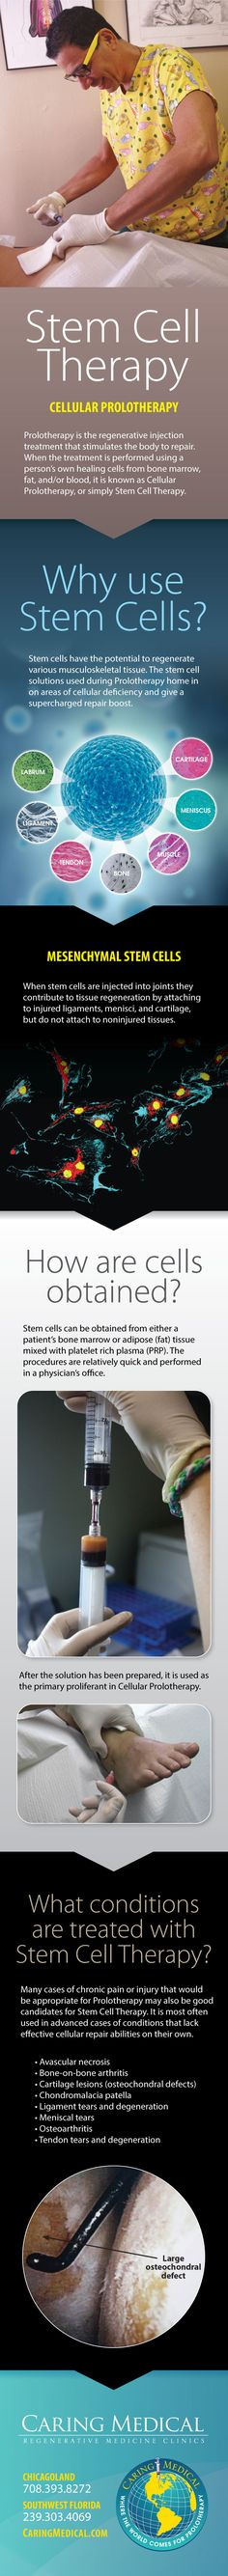 86 Best R3 Stem Cells images in 2018 | Stem cell therapy, STEM Cells